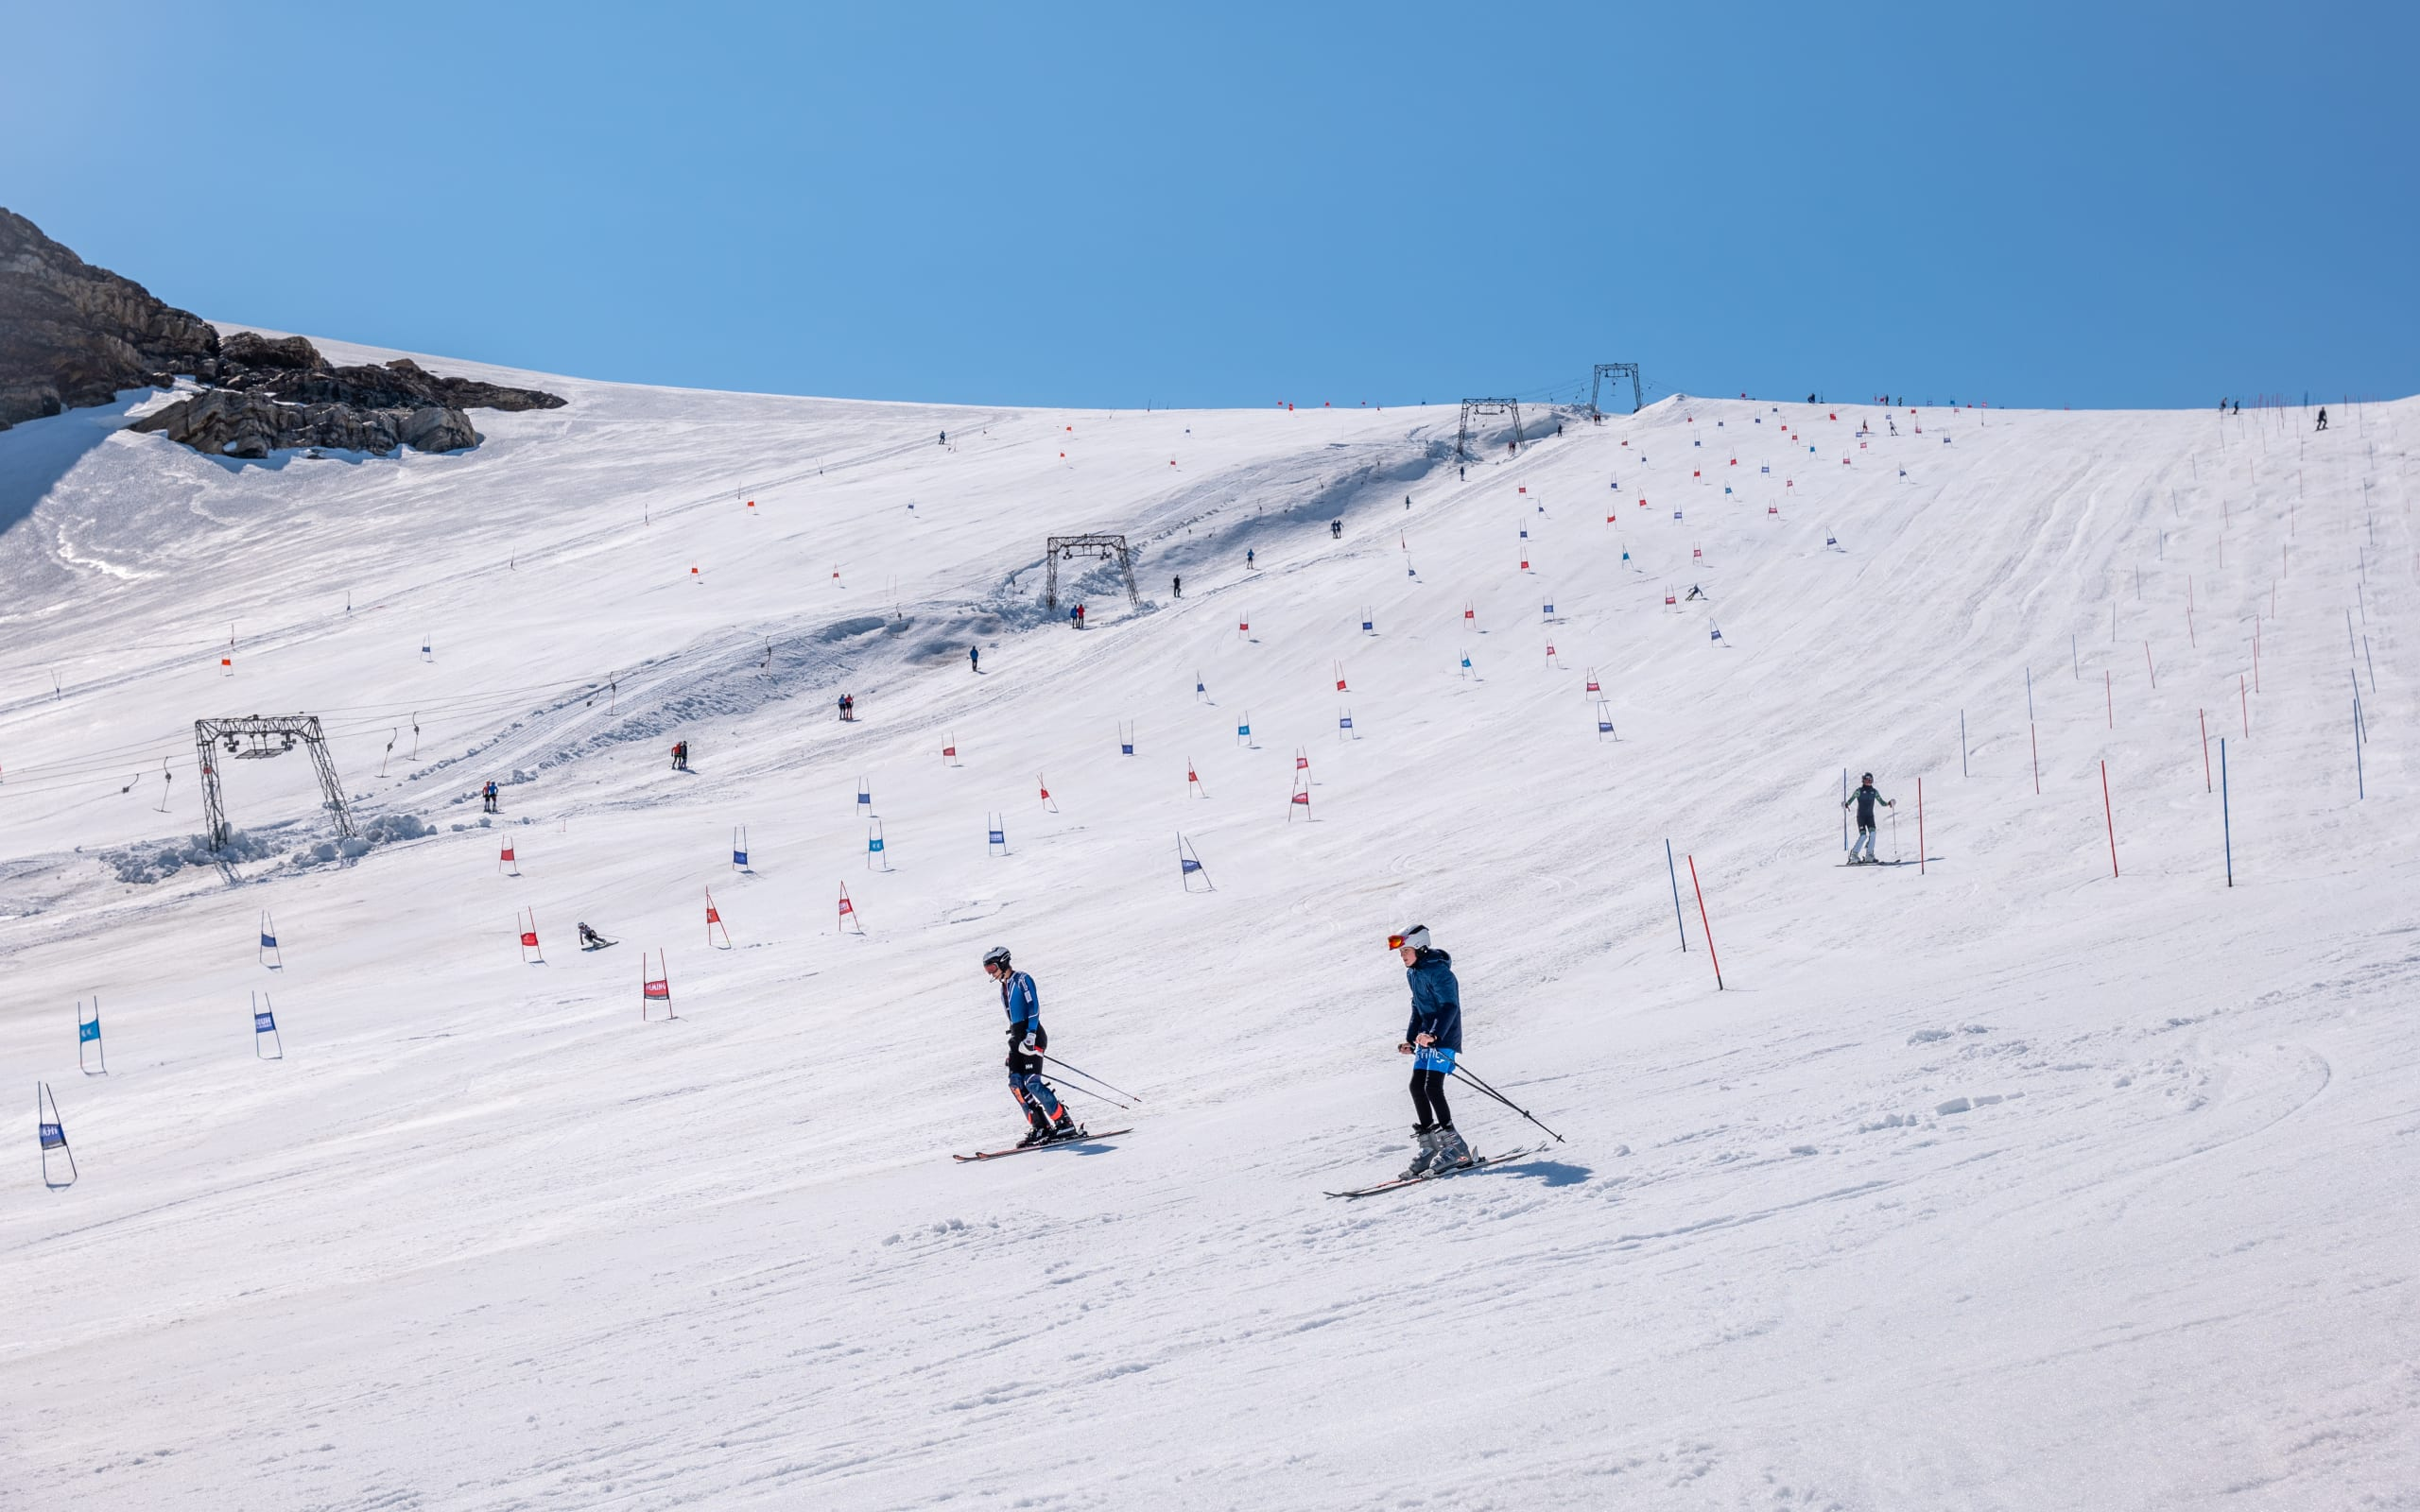 Summer skiing at Folgefonna Glacier resort